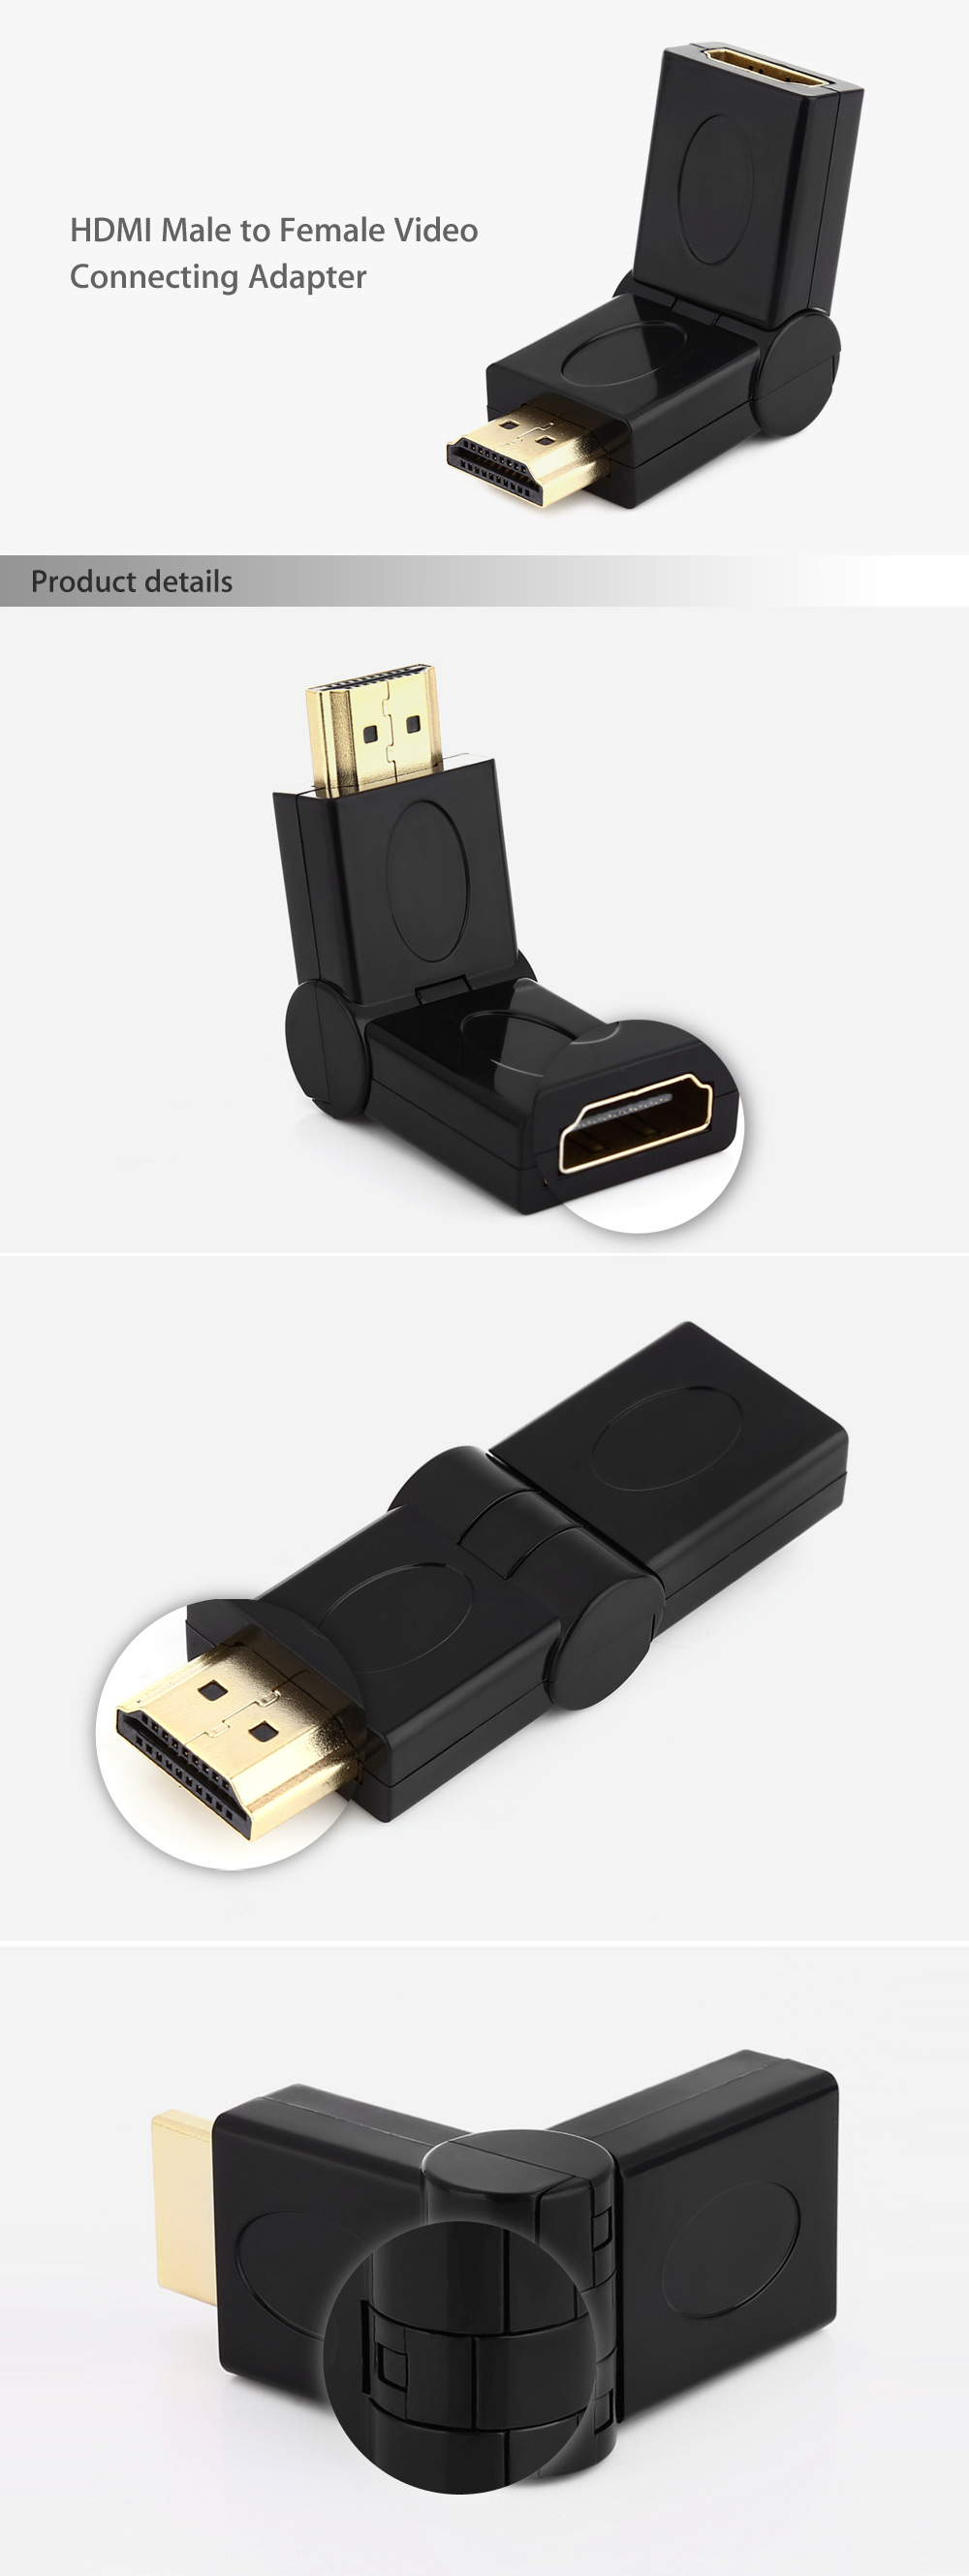 Gold-plated HDMI Male to Female Video Connecting Adapter